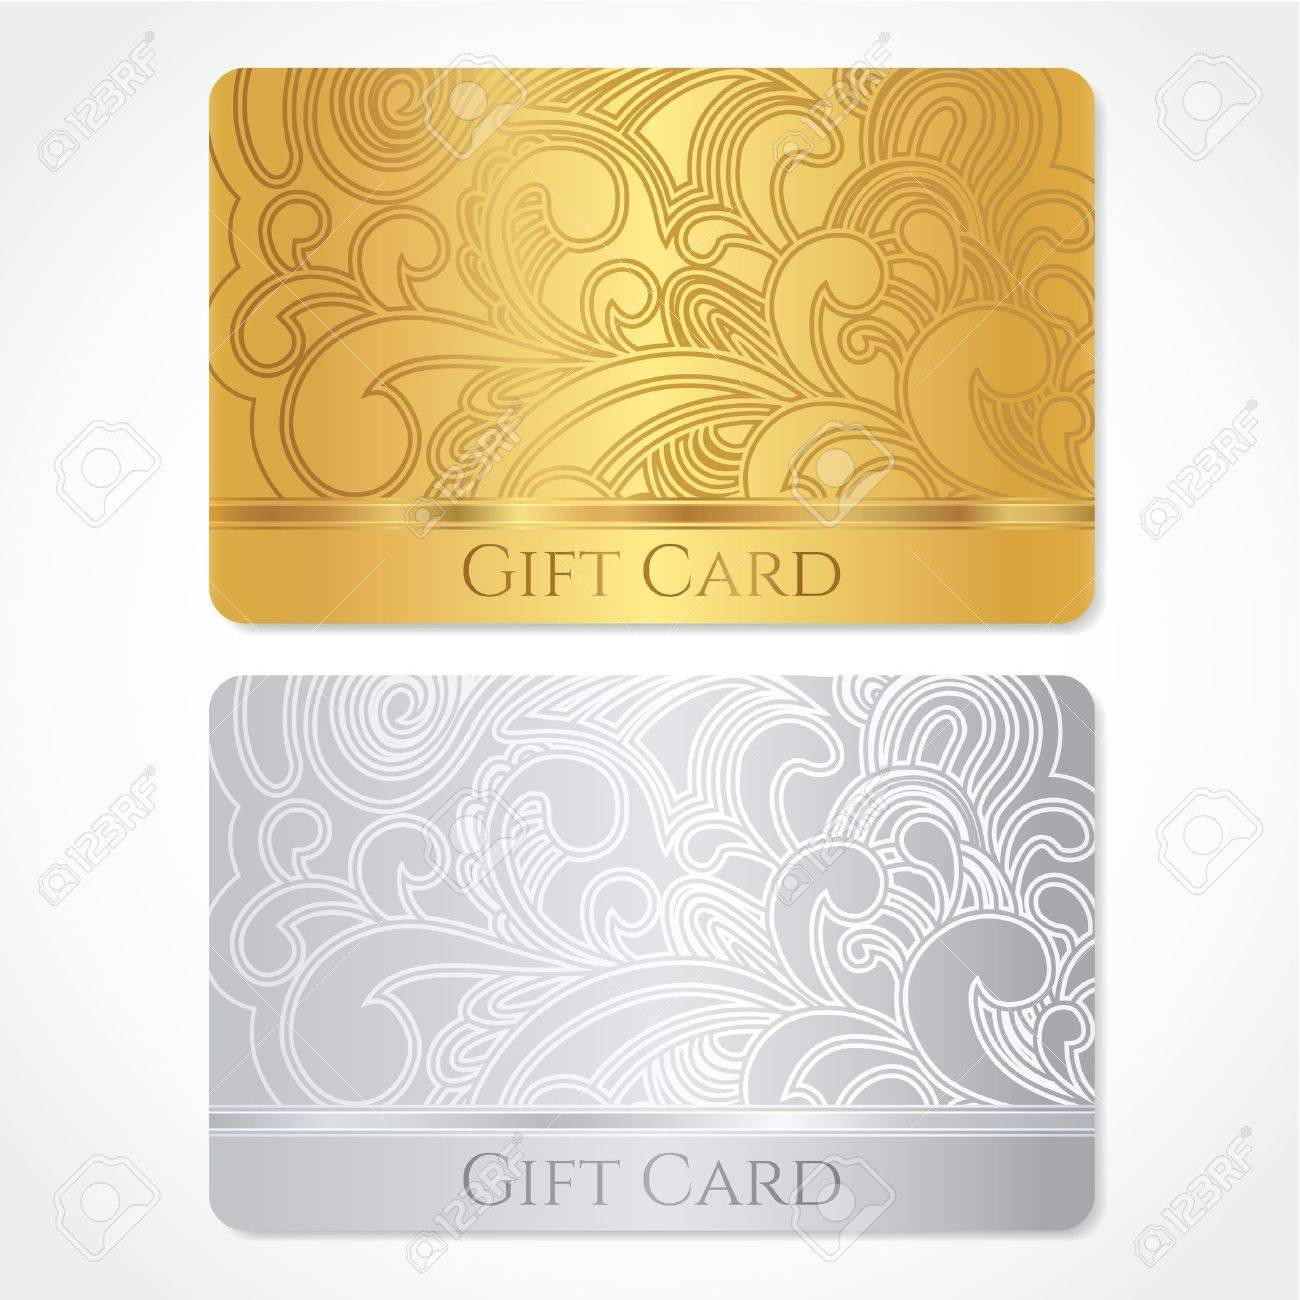 ticket outline stock photos images royalty ticket outline ticket outline silver and gold gift card discount card business card floral scroll